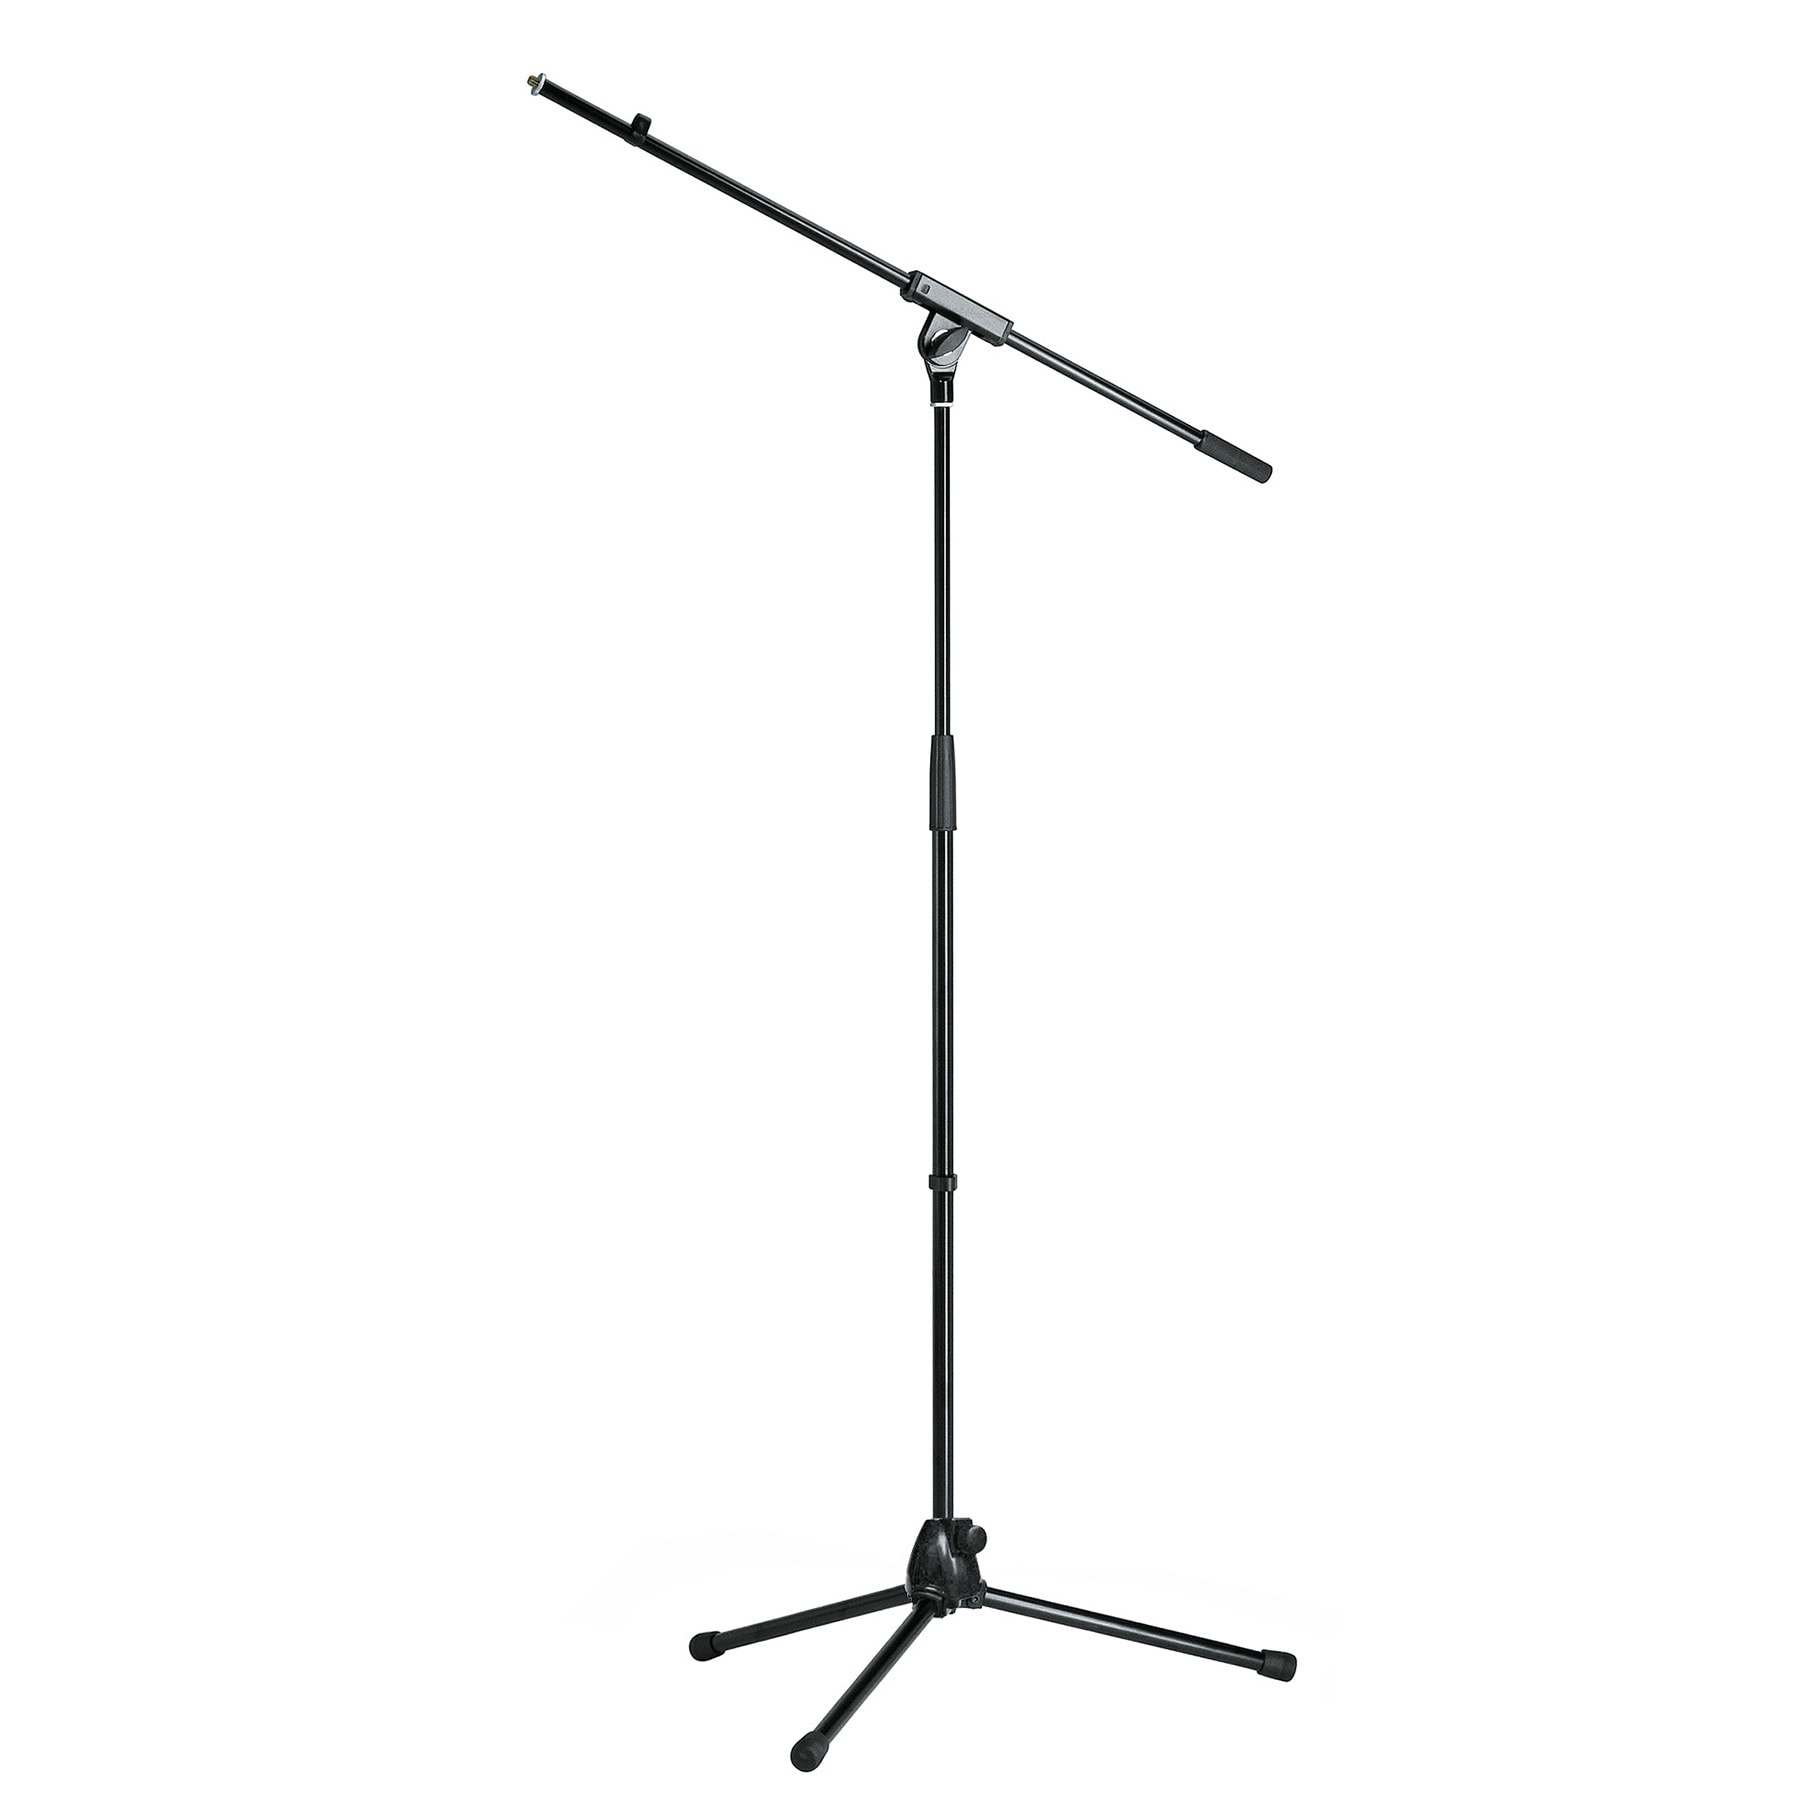 KM21070 - Microphone stand